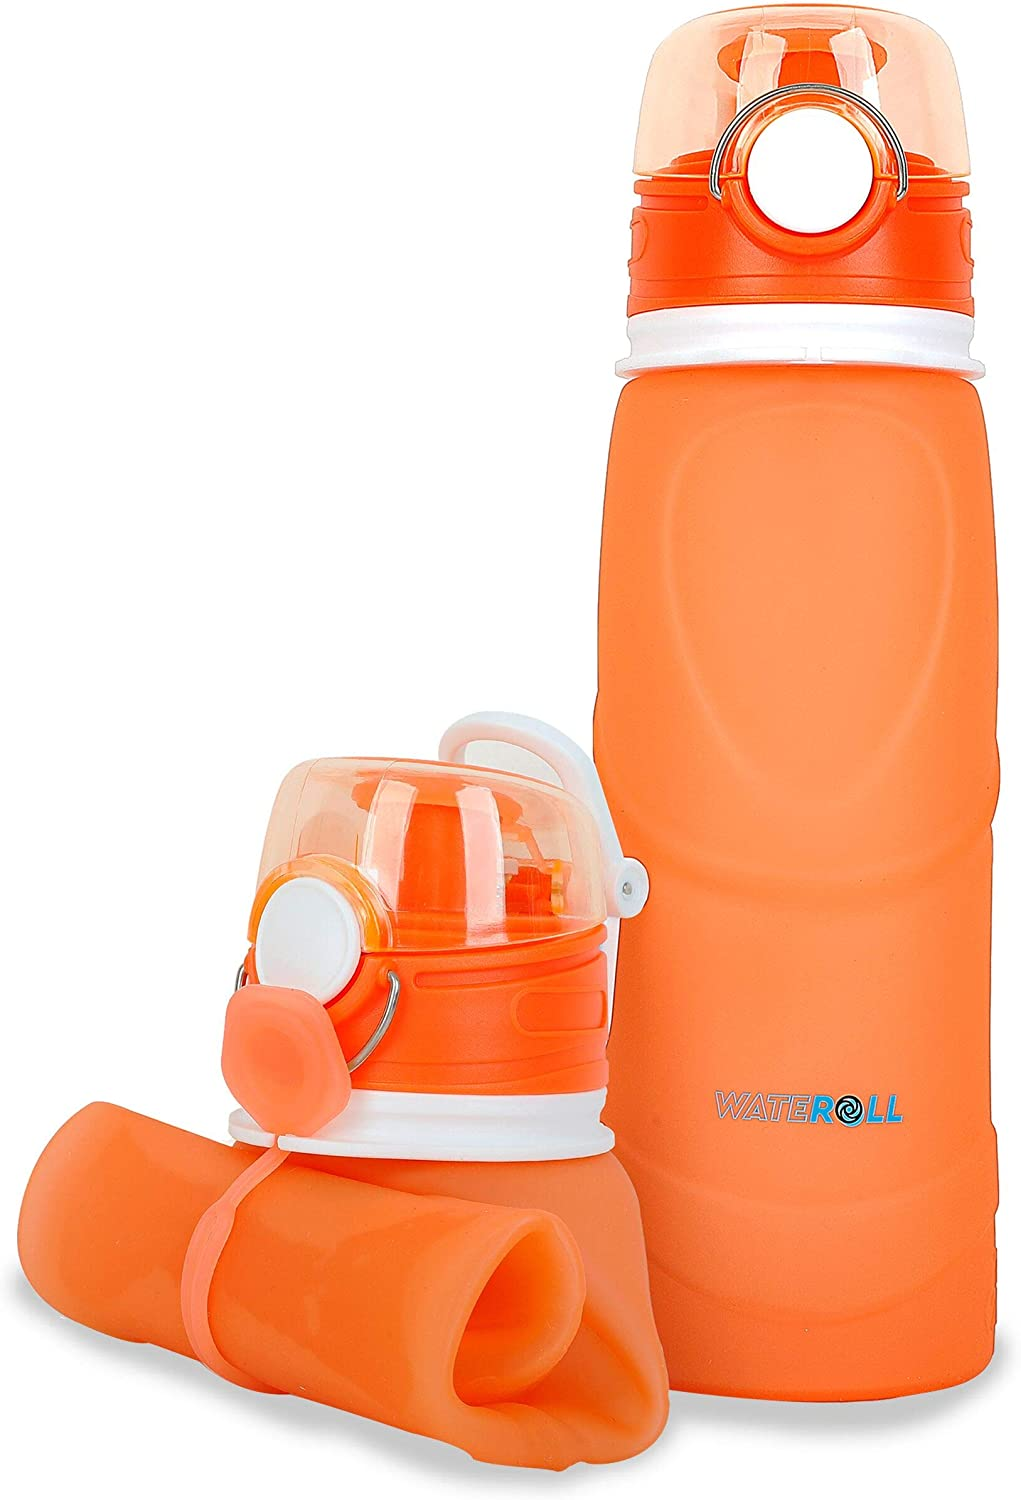 Foldable Water Bottle 26oz - Collapsible, Portable and Collapsable Travel Sports Waterbottles - Medical Grade, BPA Free, Leak Proof and Anti Spill Valve